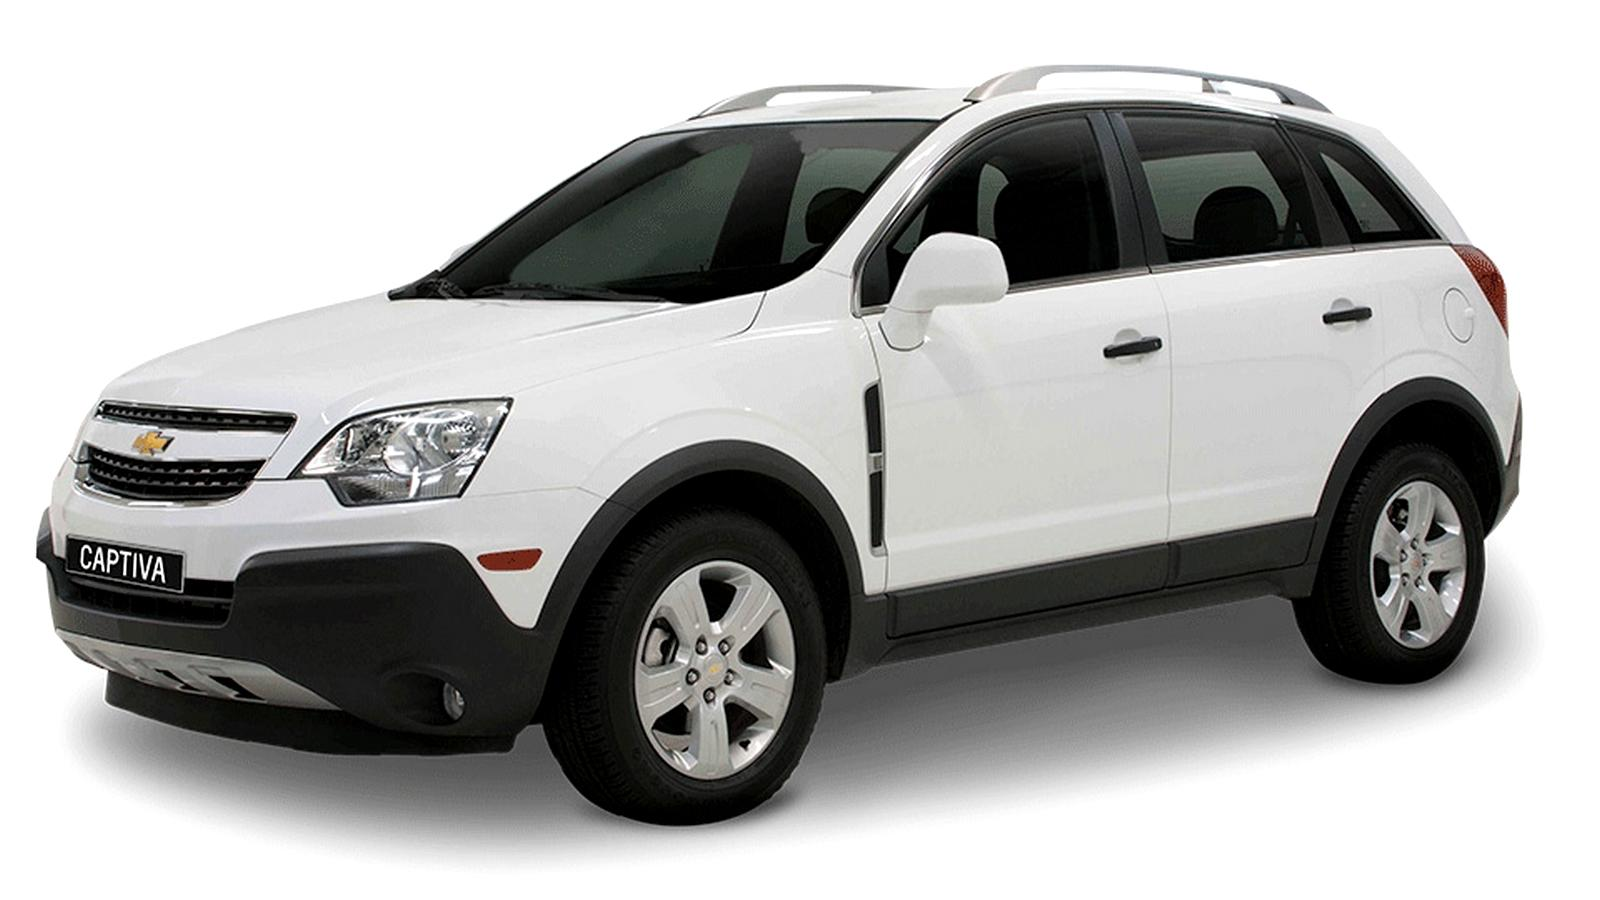 captiva dating site Page 1 of 2 - experienced holden captiva owners - posted in what do you think: we've been looking at buying a brand new captiva sx they are.